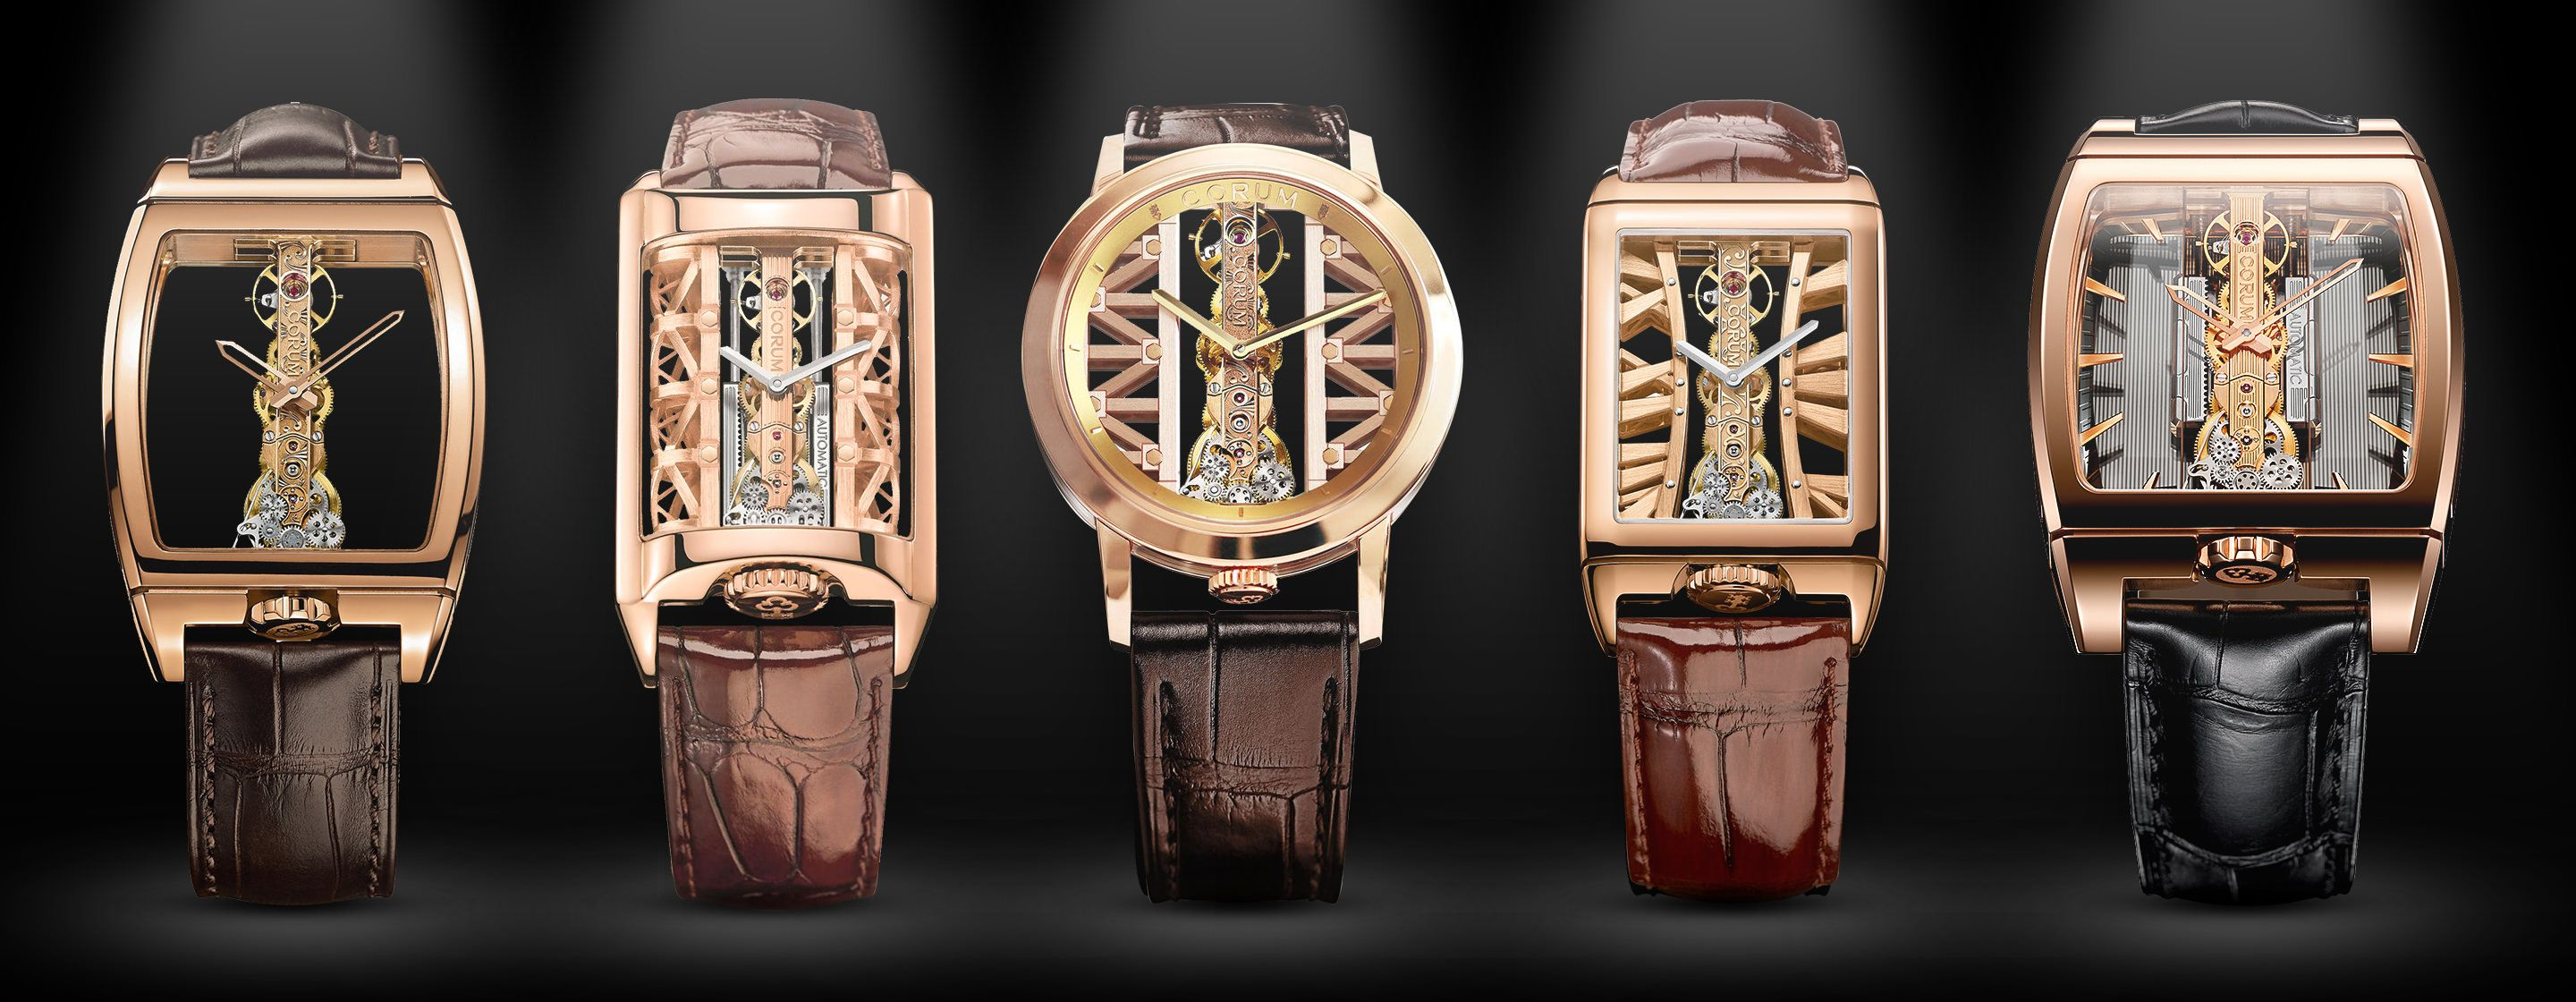 c95f16cfddd Round-UpA Bridge Between Minimalism And Mechanical Mastery: The Finest  Corum Golden Bridge Watches